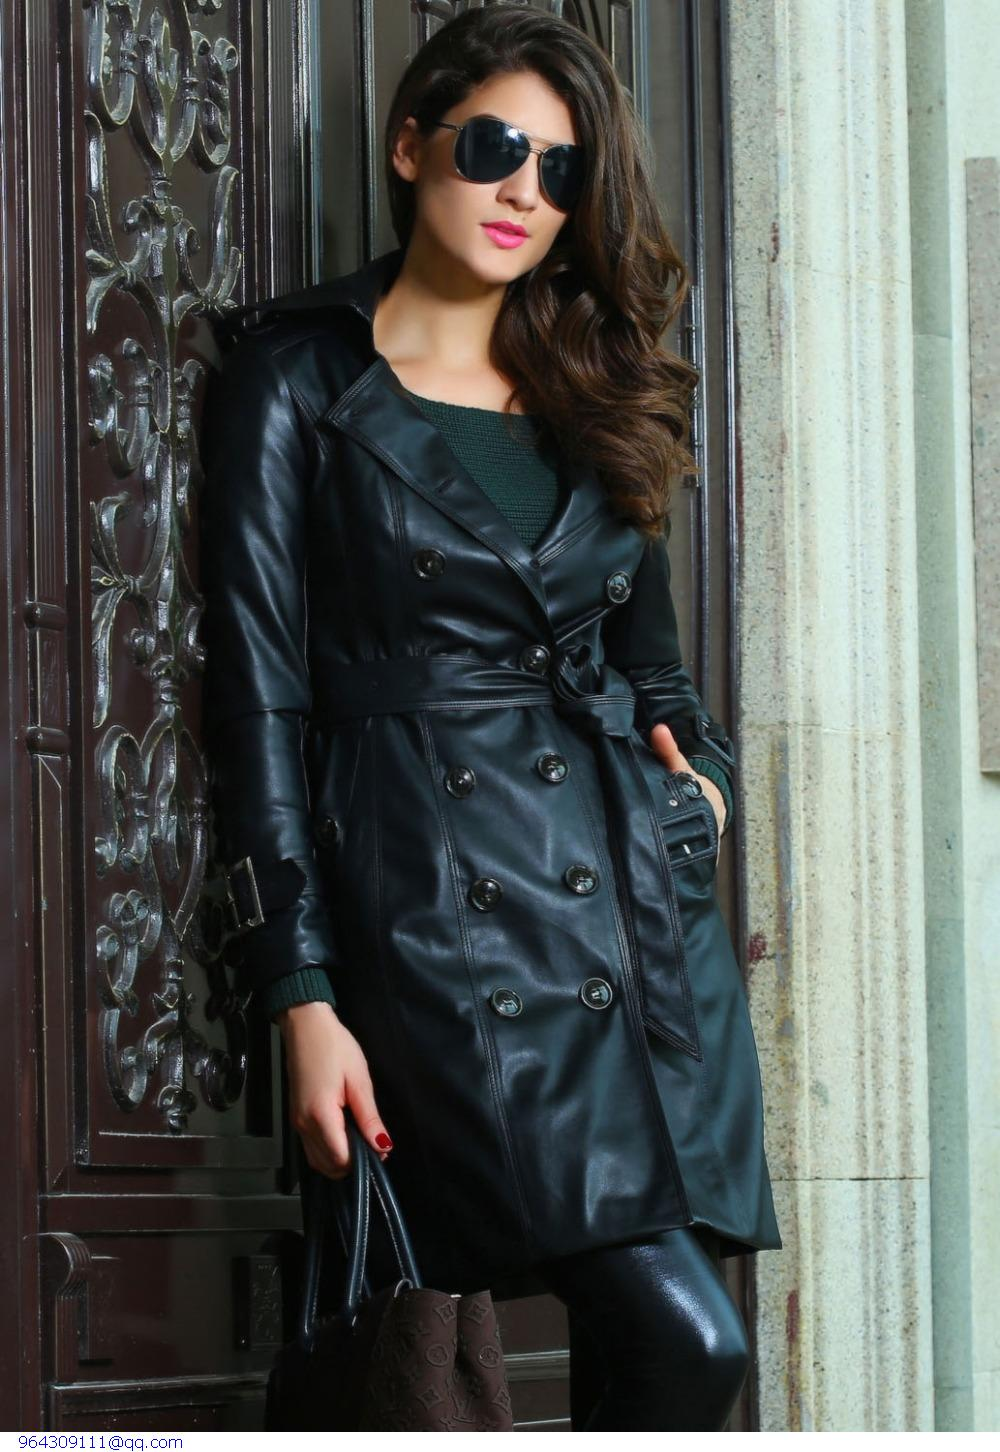 Women Autumn&Winter Hot Sale  Fashion Black Leather Womens Long Trench Coat Jacket abrigos mujer manteau femme